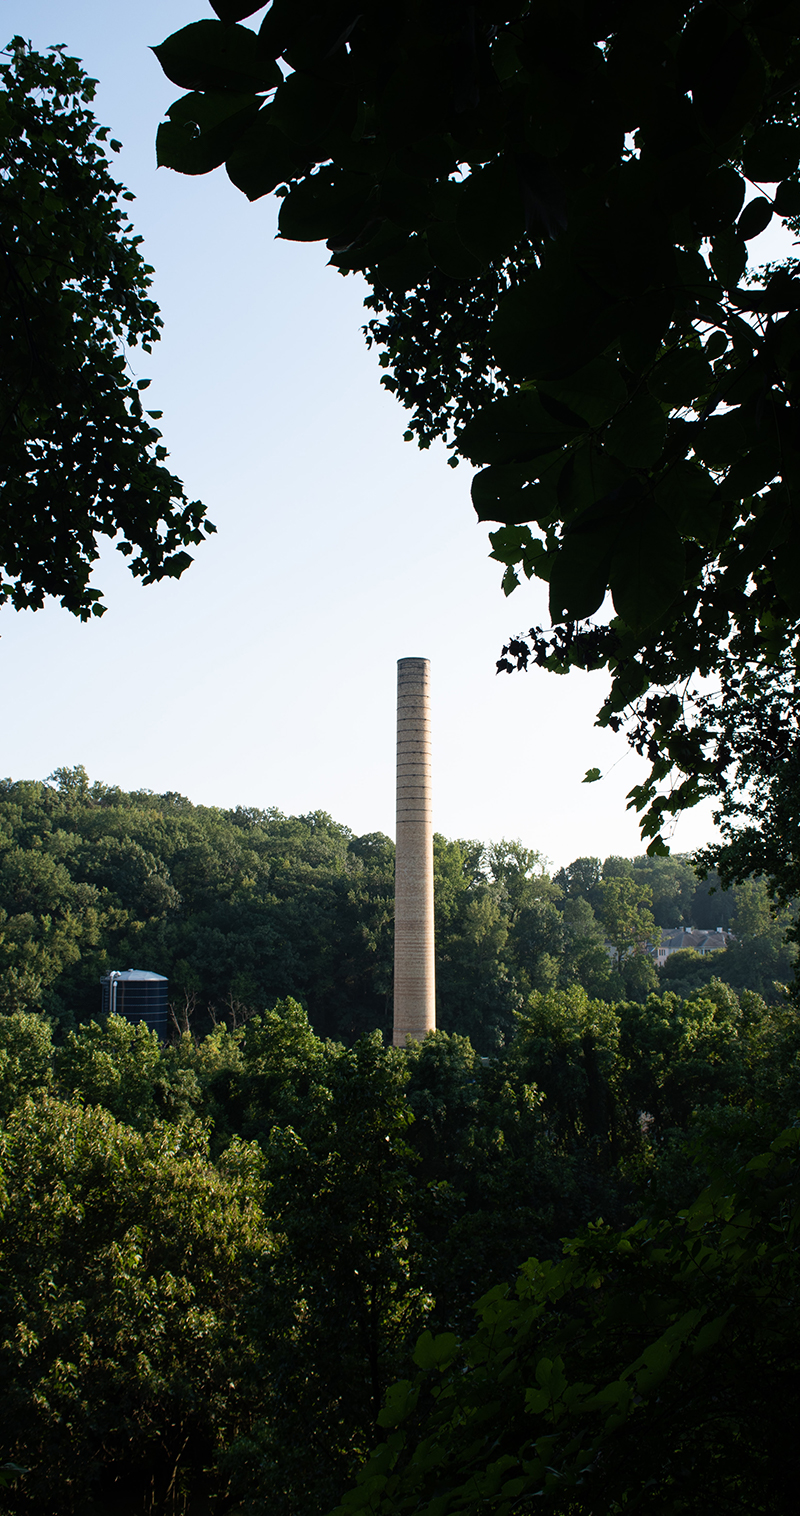 trees and smokestack